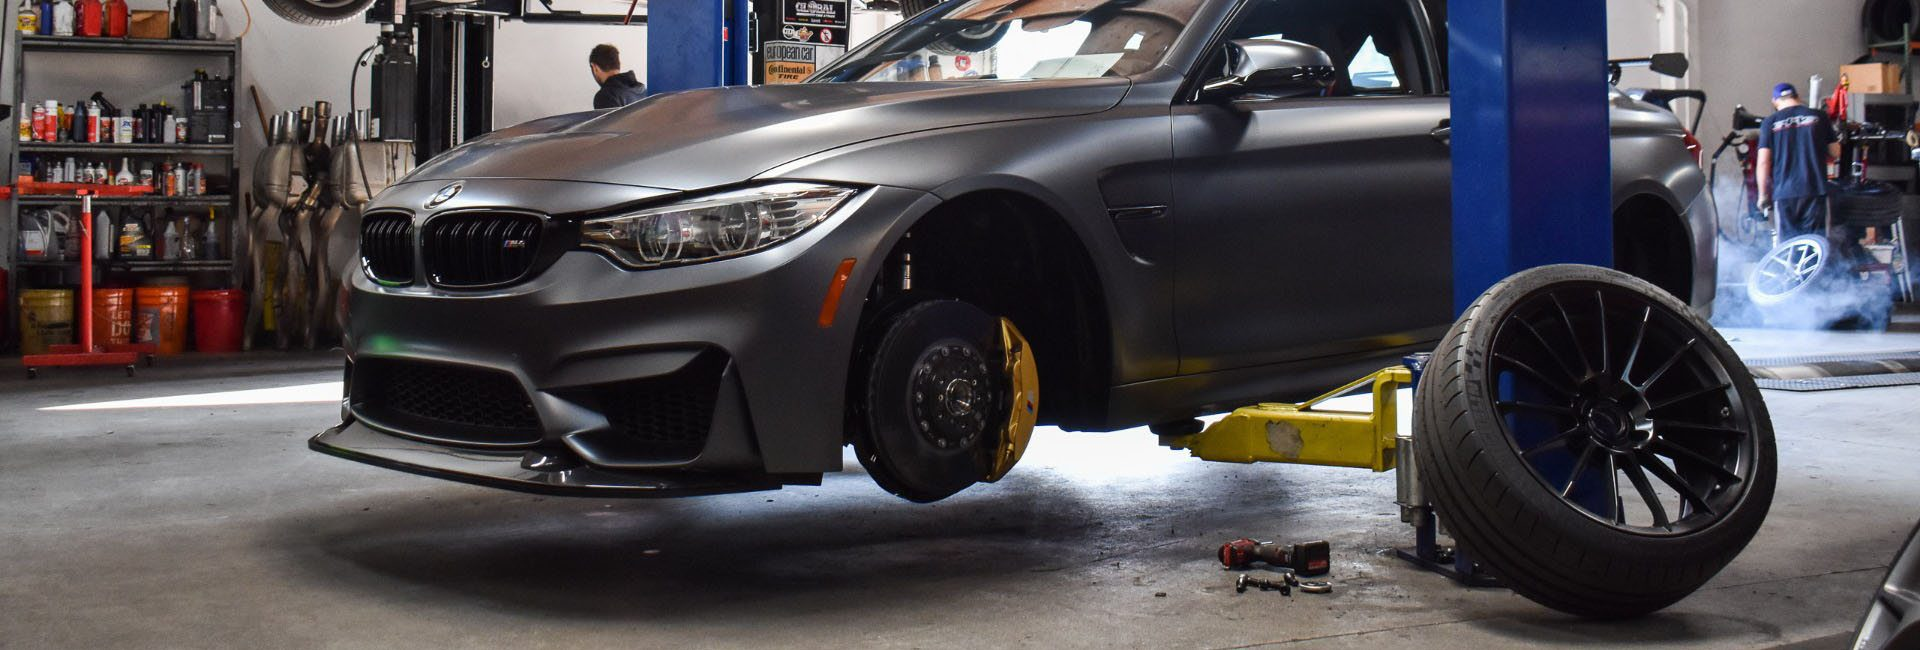 Car Source: What A Beauty! BMW M4 GTS Modded At European Auto Source